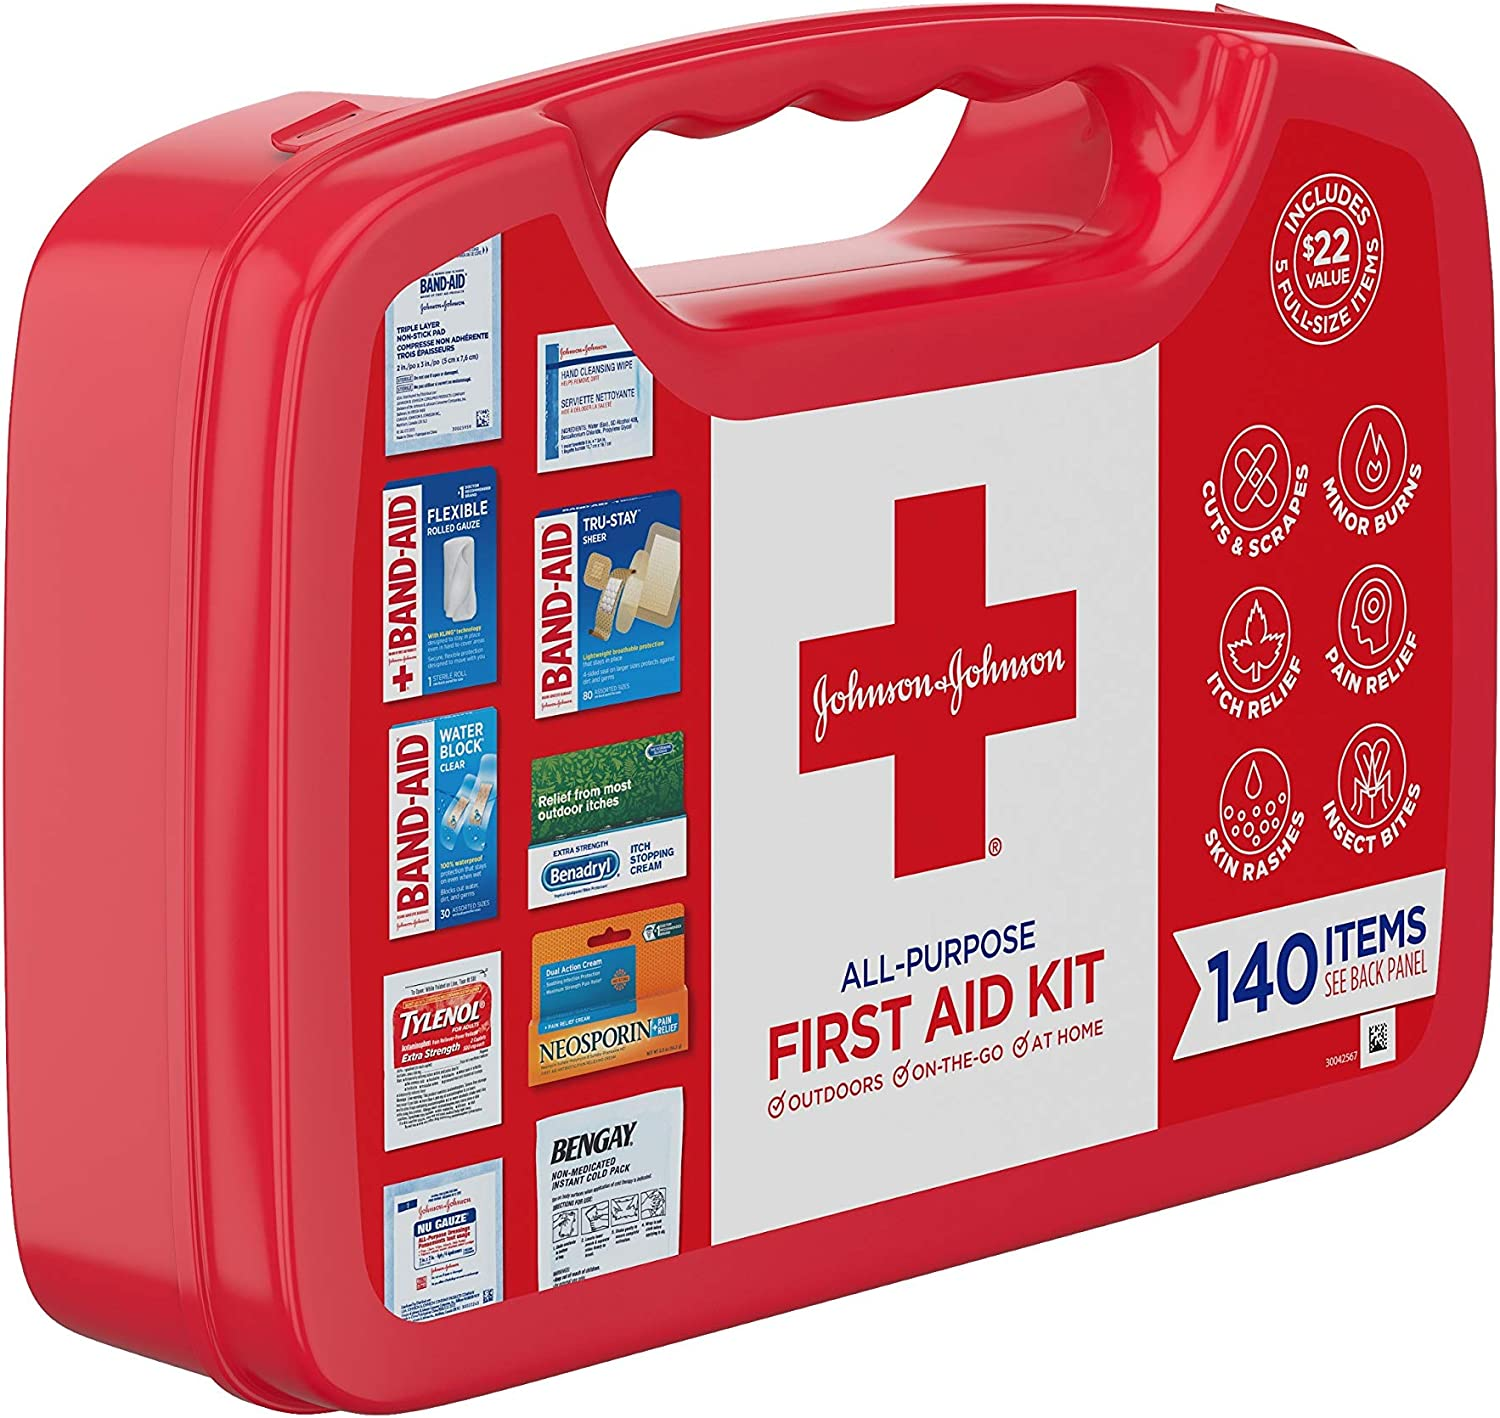 Johnson & Johnson All-Purpose First Aid Kit, Portable Compact First Aid Set for Minor Cuts, Scrapes, Sprains & Burns, Ideal for Home, Car, Travel and Outdoor Emergencies, 140 pieces: Health & Personal Care